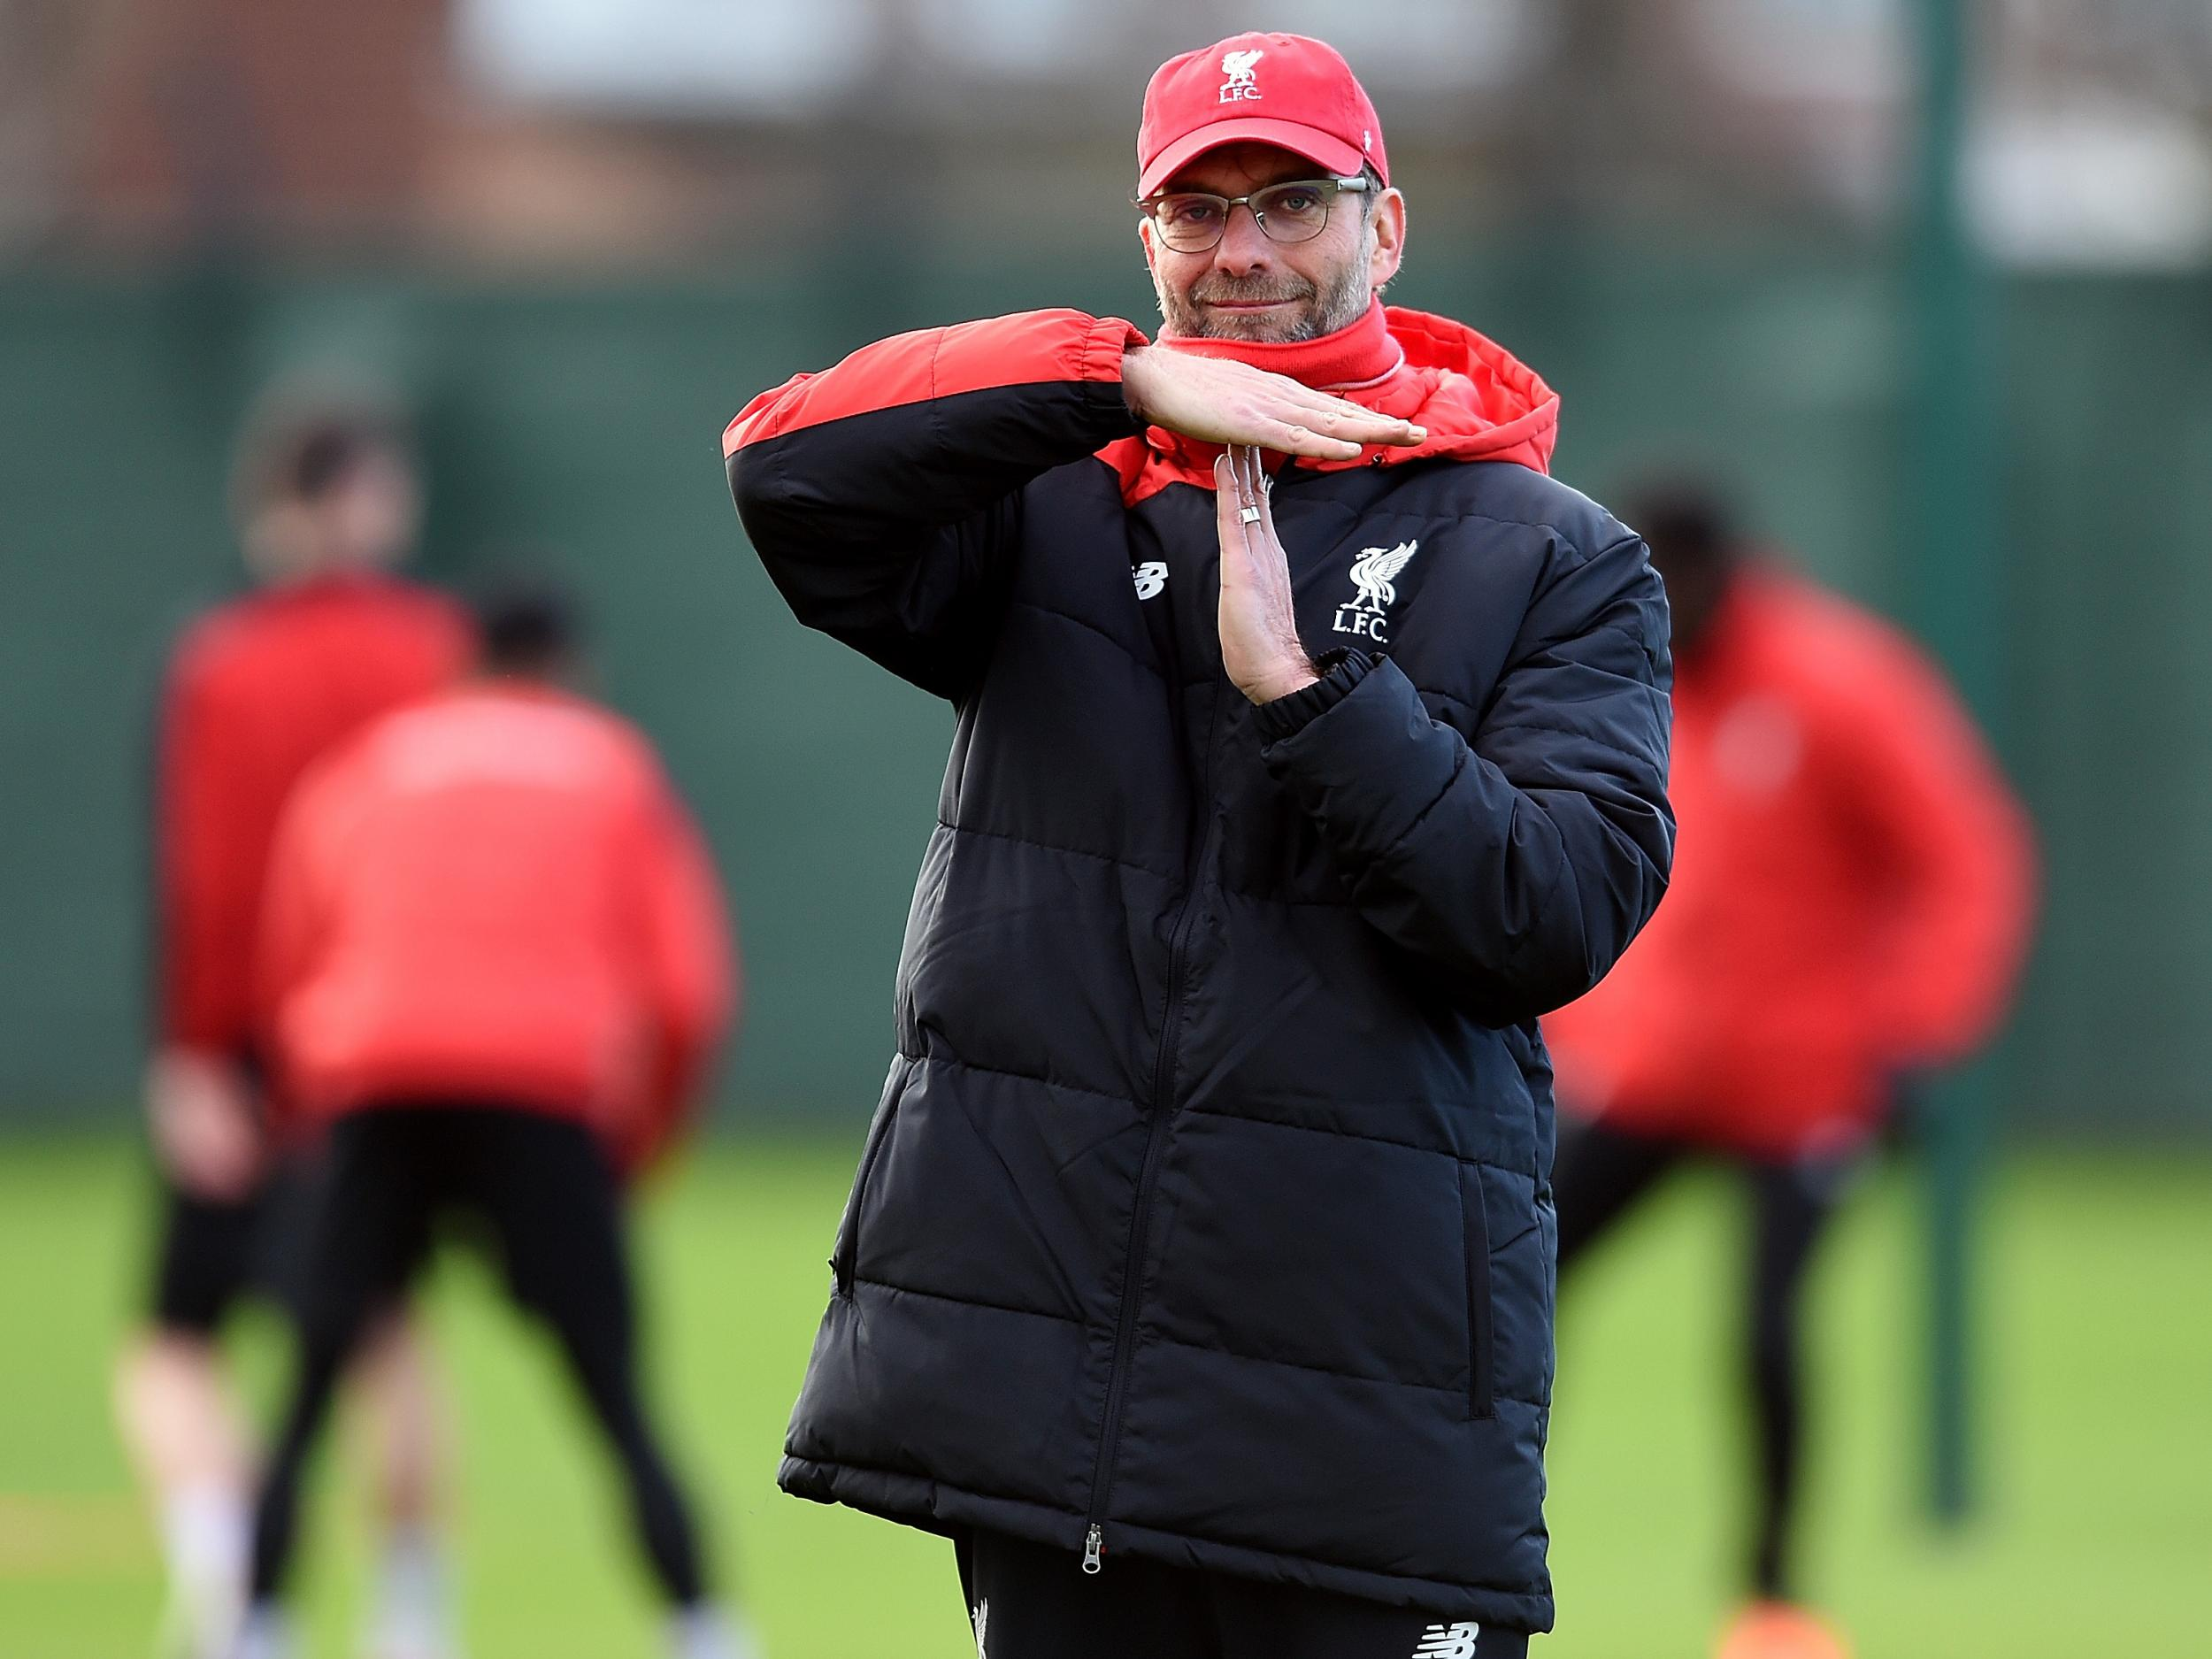 Jurgen Klopp reveals that he could end his managerial career at Liverpool